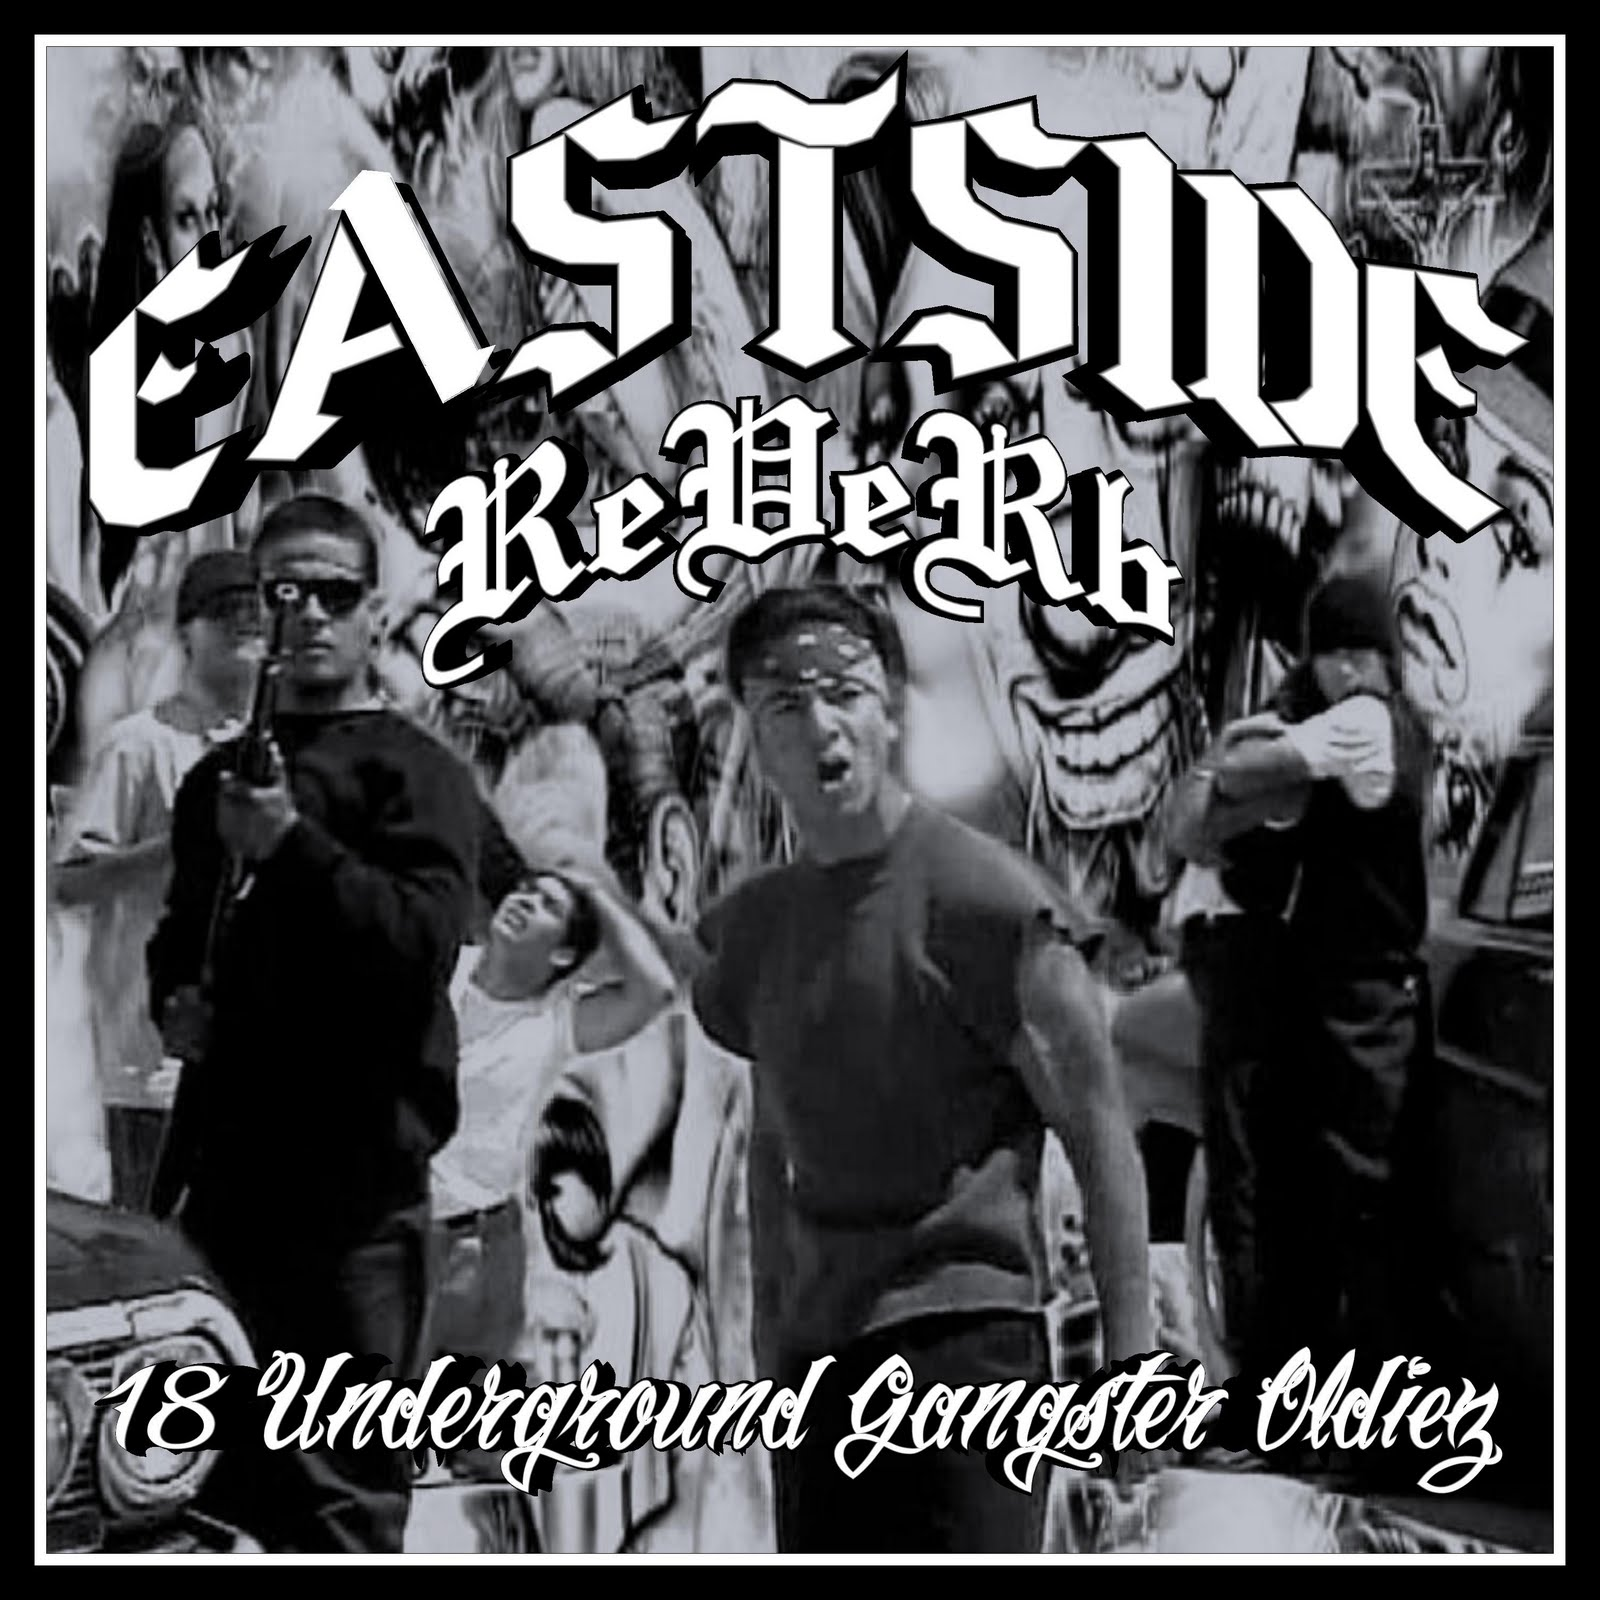 eastside gangster - photo #6